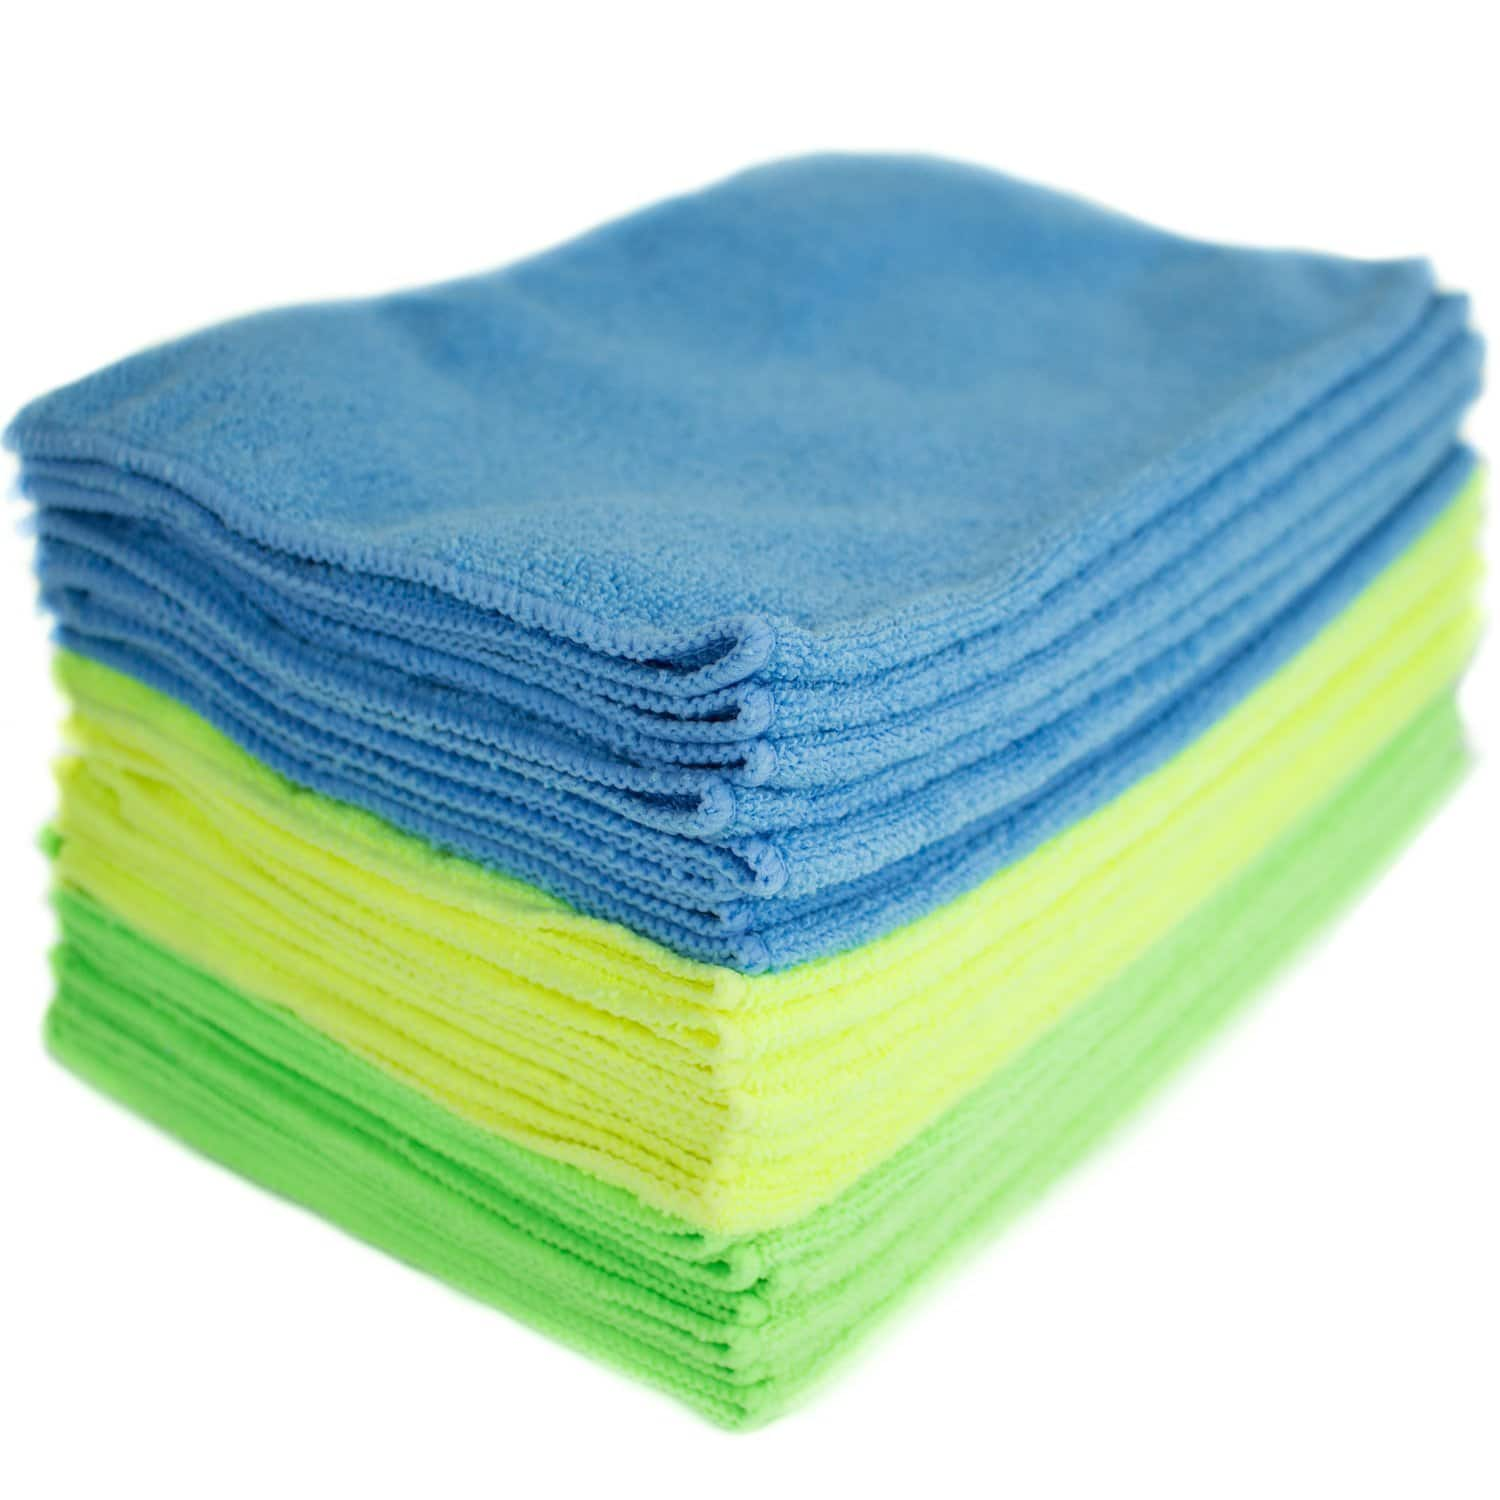 "Amazon Prime Members: 24-Pack Zwipes 12""x16"" Microfiber Cleaning Cloths $8.50 + Free Shipping Amazon.com"